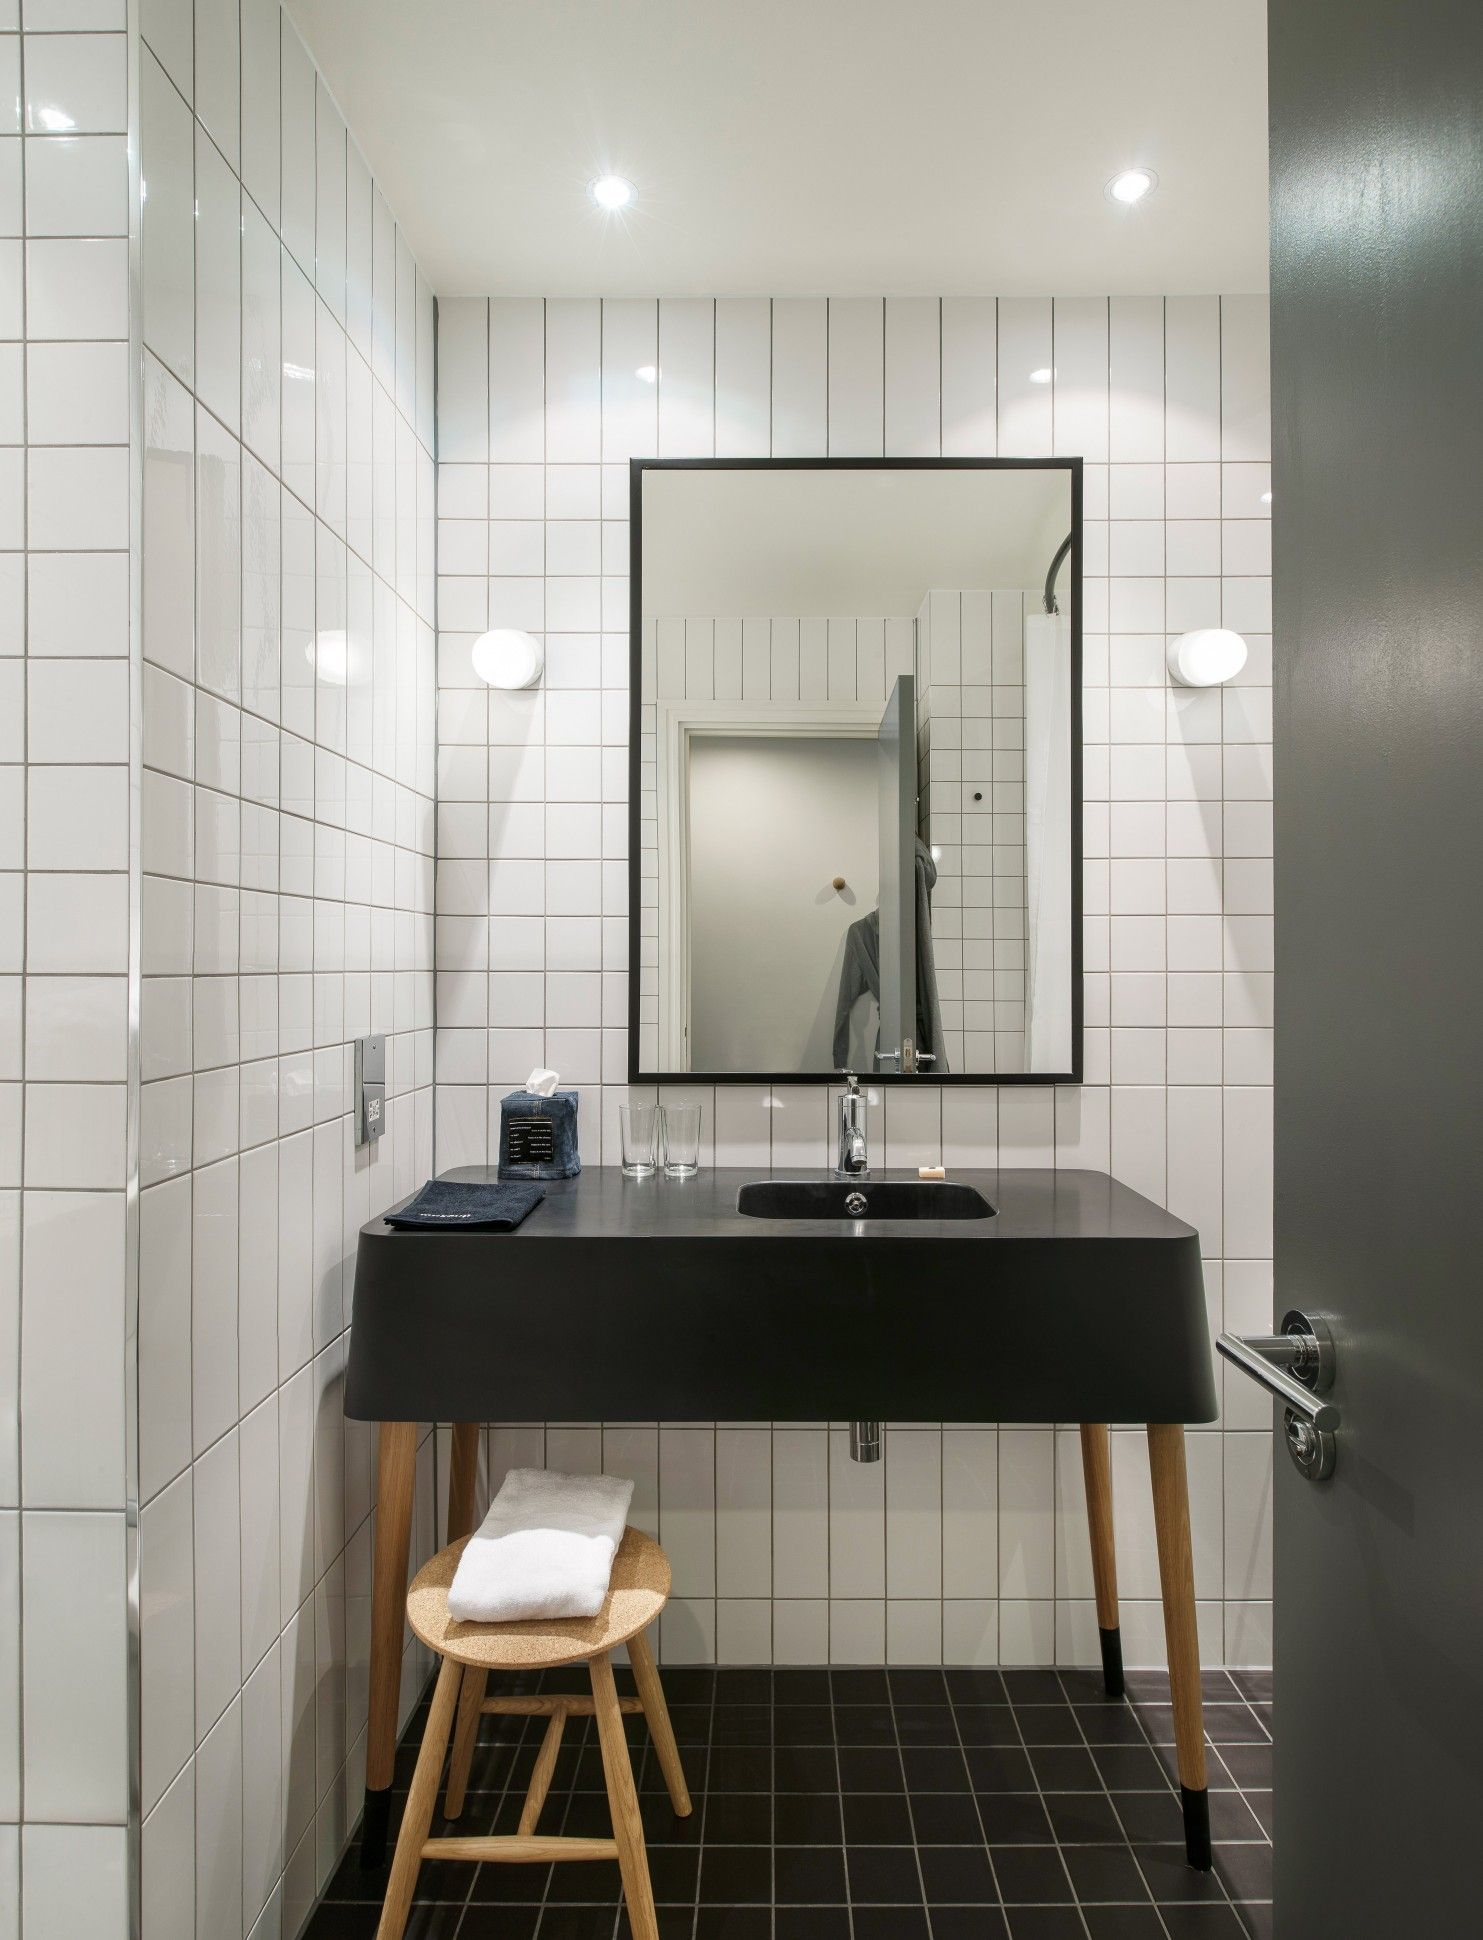 Shoreditch Design Rooms: A Tale Of Two Cities: Ace Hotel London Shoreditch